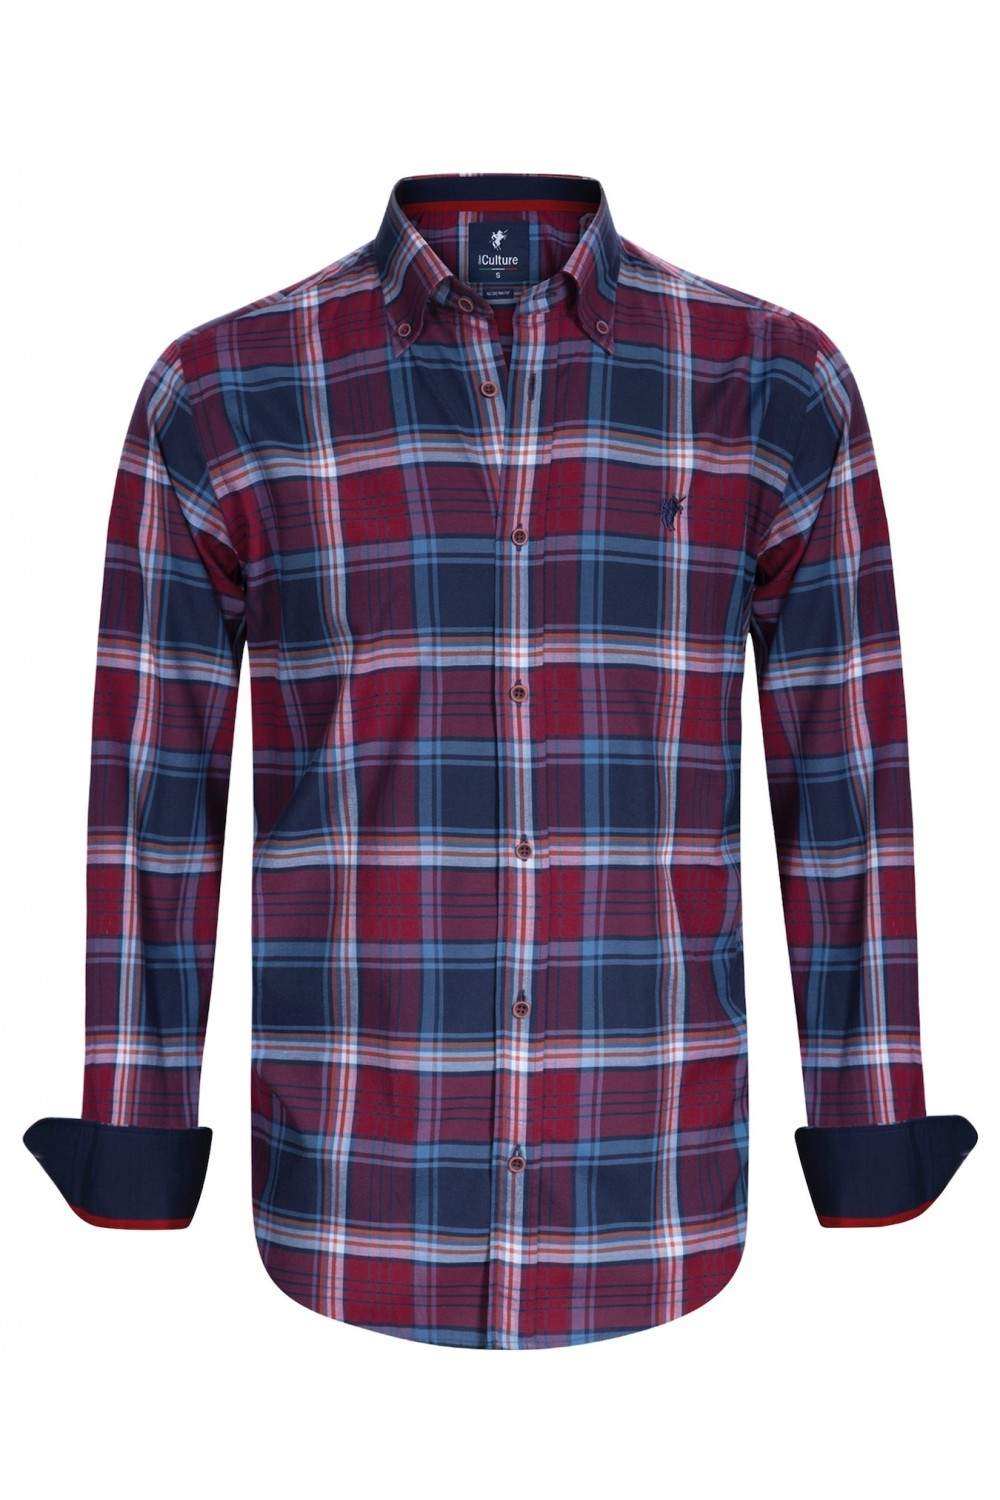 Men's Shirt Button Down Red Checked